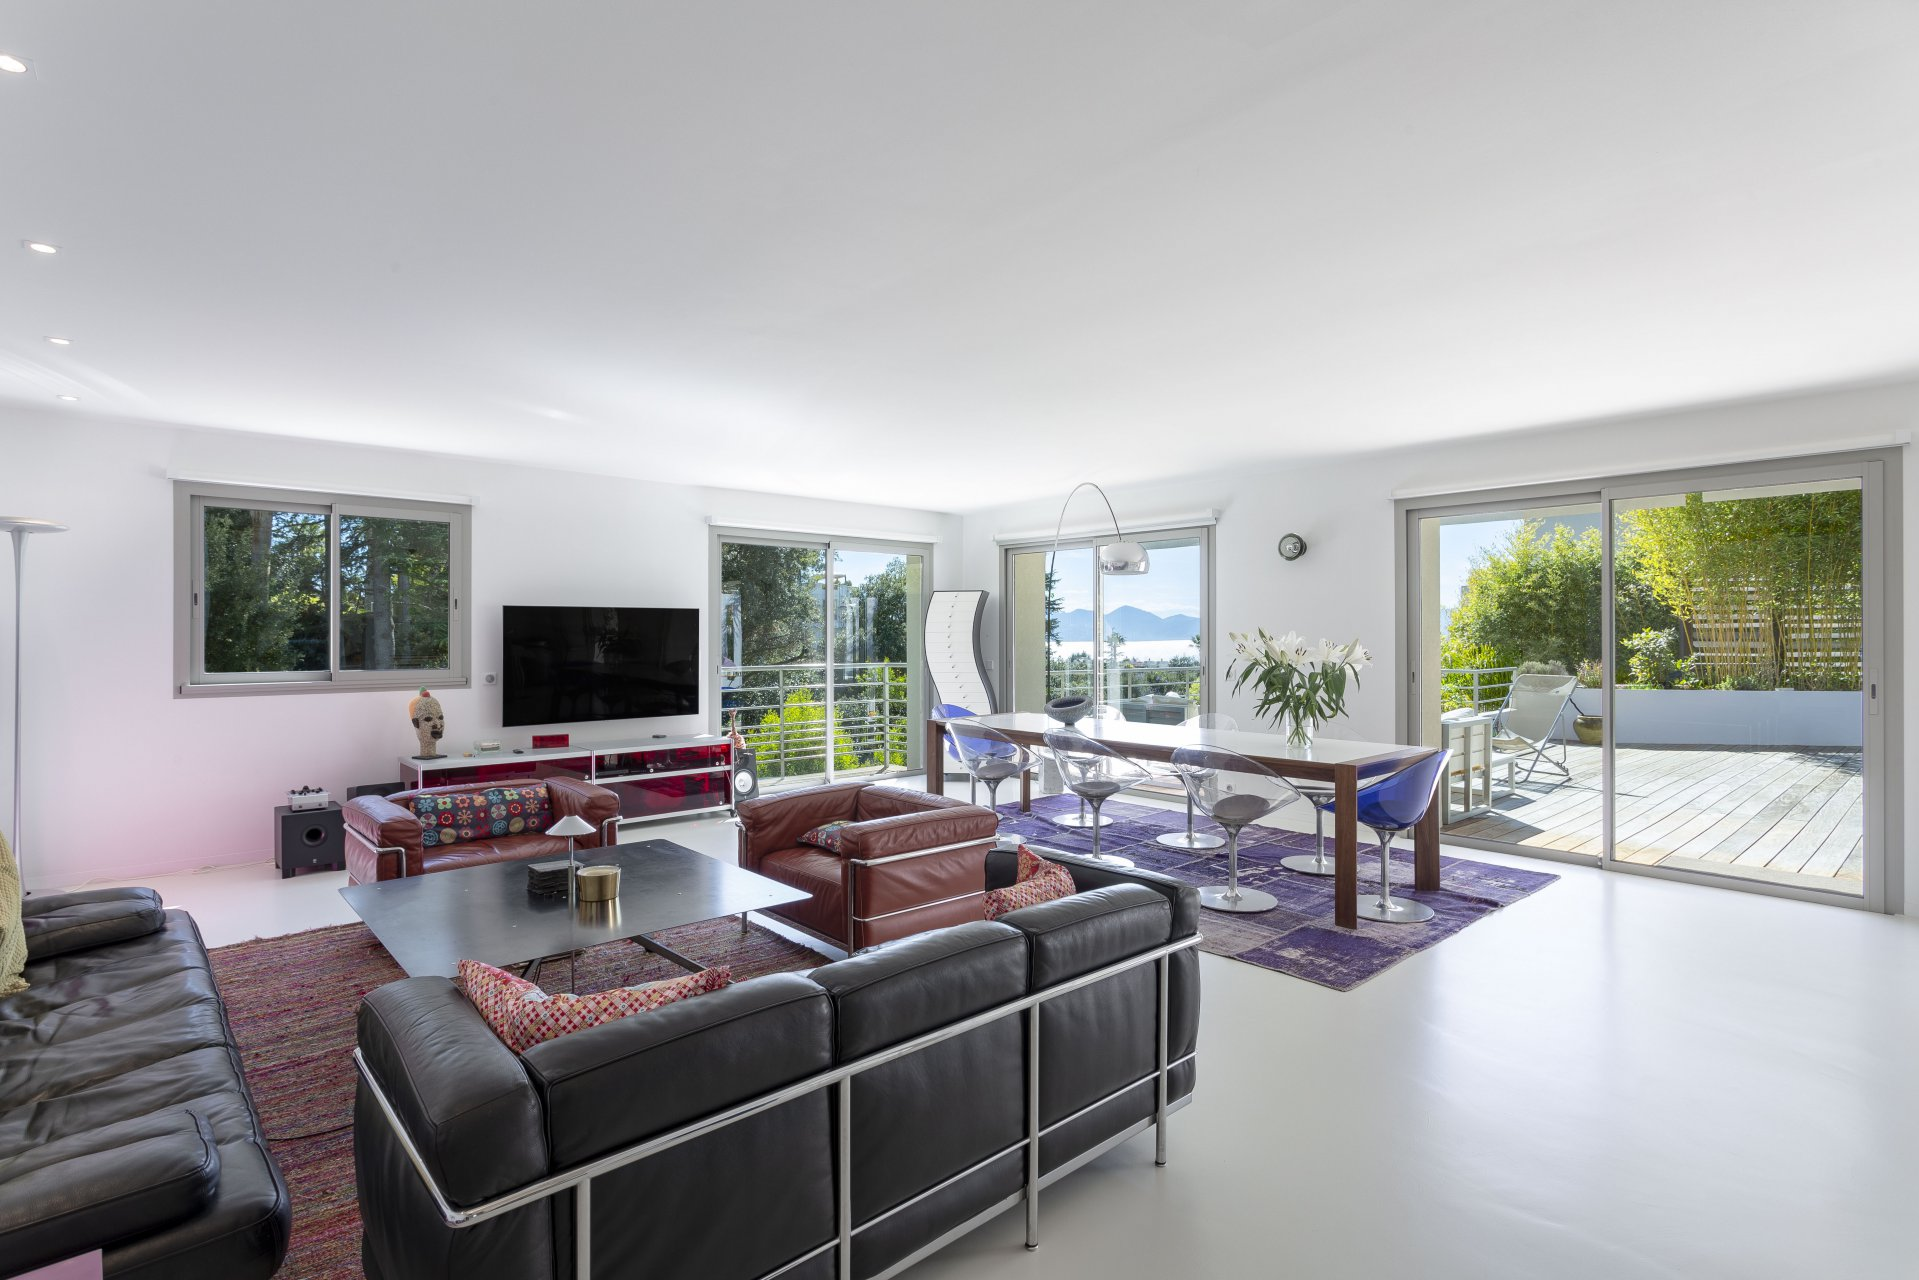 CANNES CALIFORNIE MONTFLEURY - CONFORTABLE CONTEMPORAINE